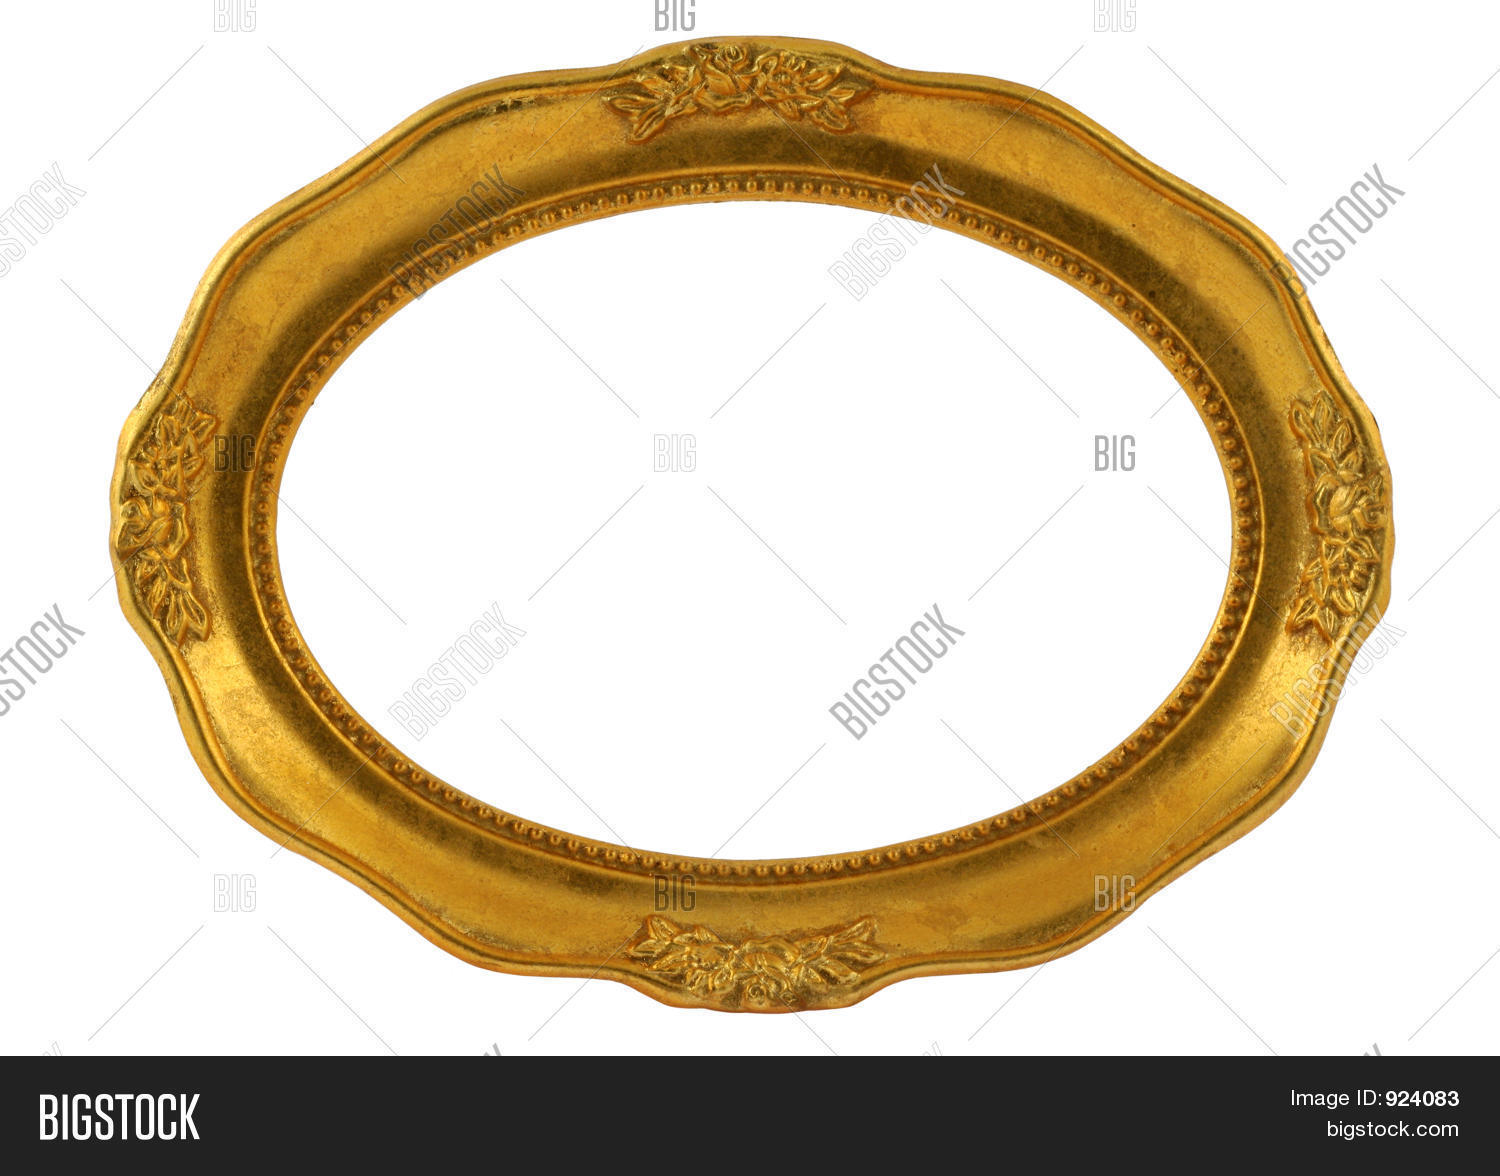 Gilded Oval Frame Image & Photo (Free Trial) | Bigstock